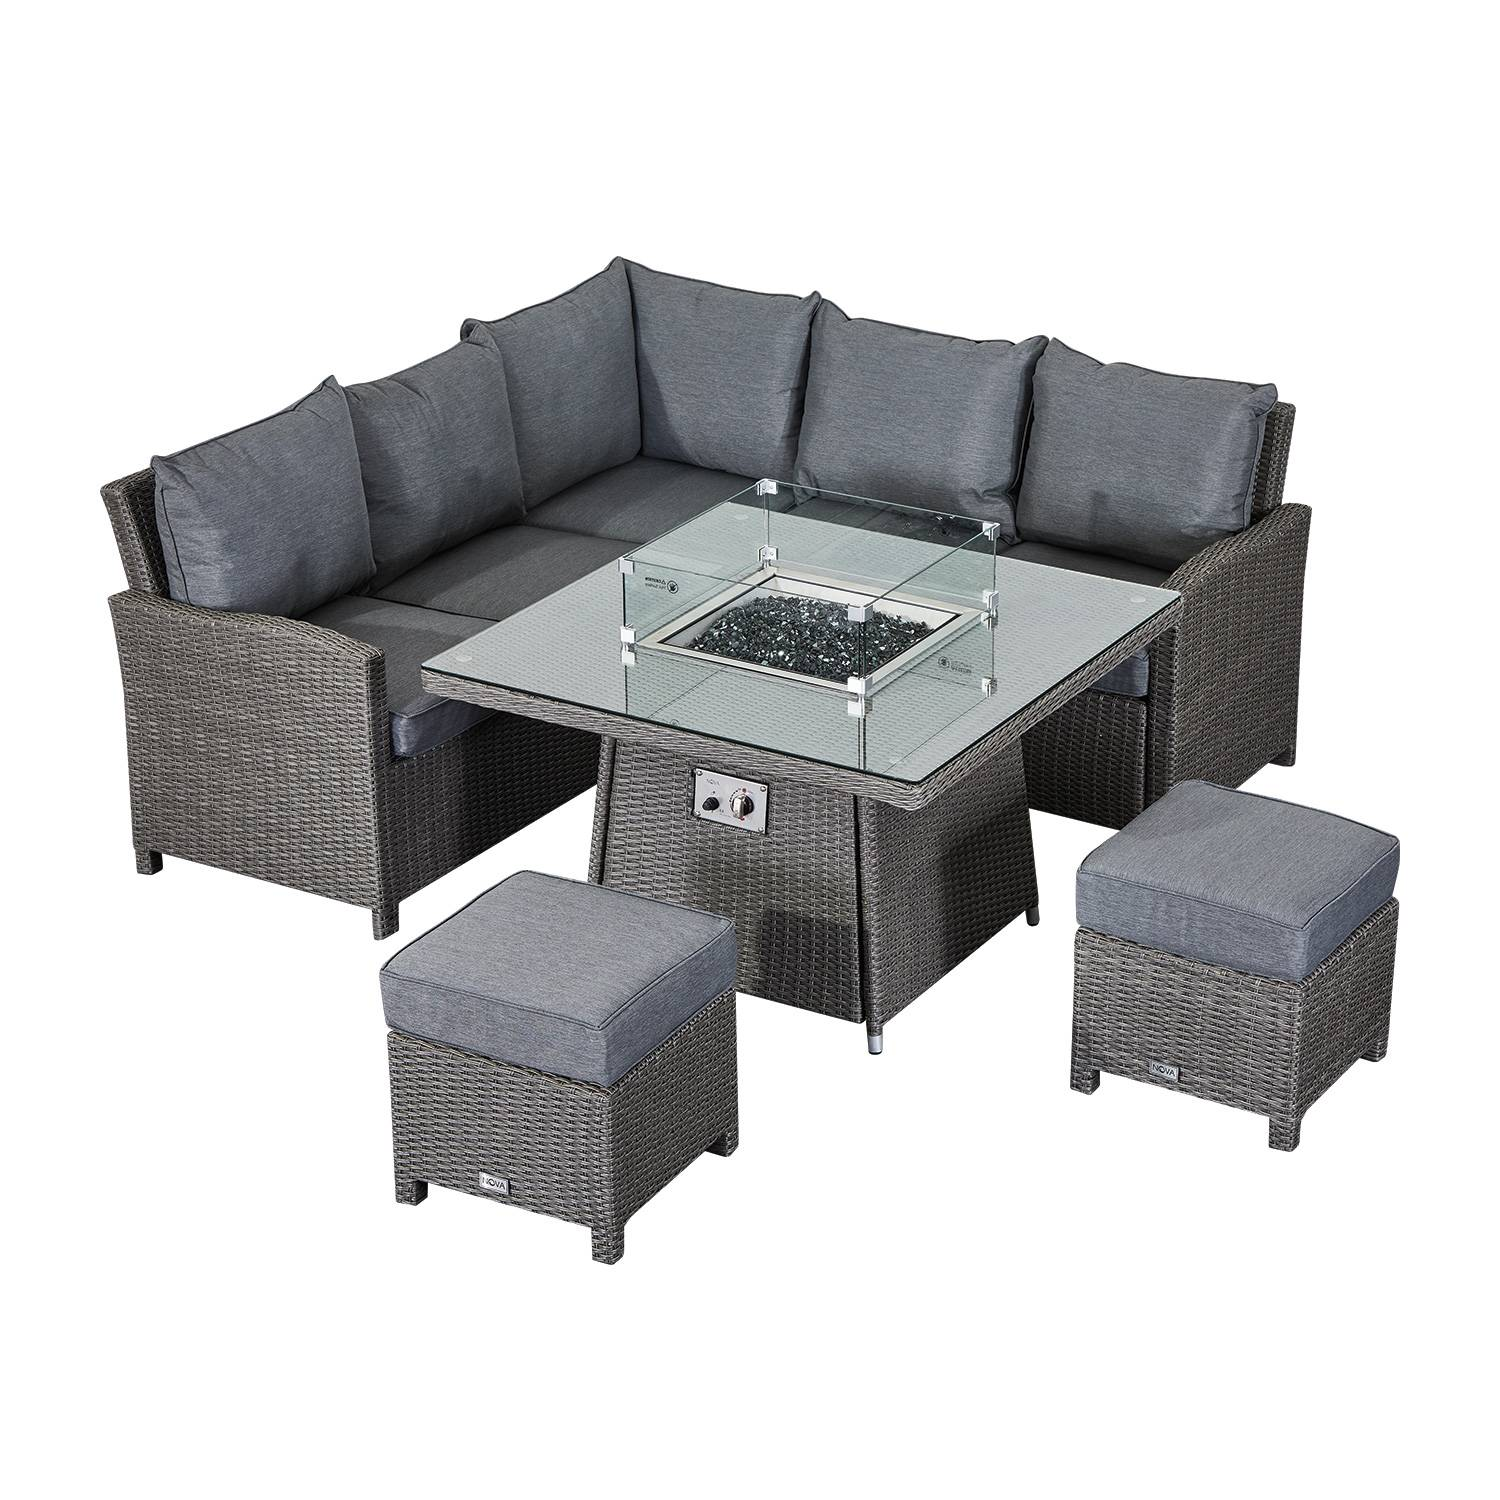 Oakworld Alfresco Heritage Ciara Compact Corner Dining Set with Fire Pit Table   Slate Grey